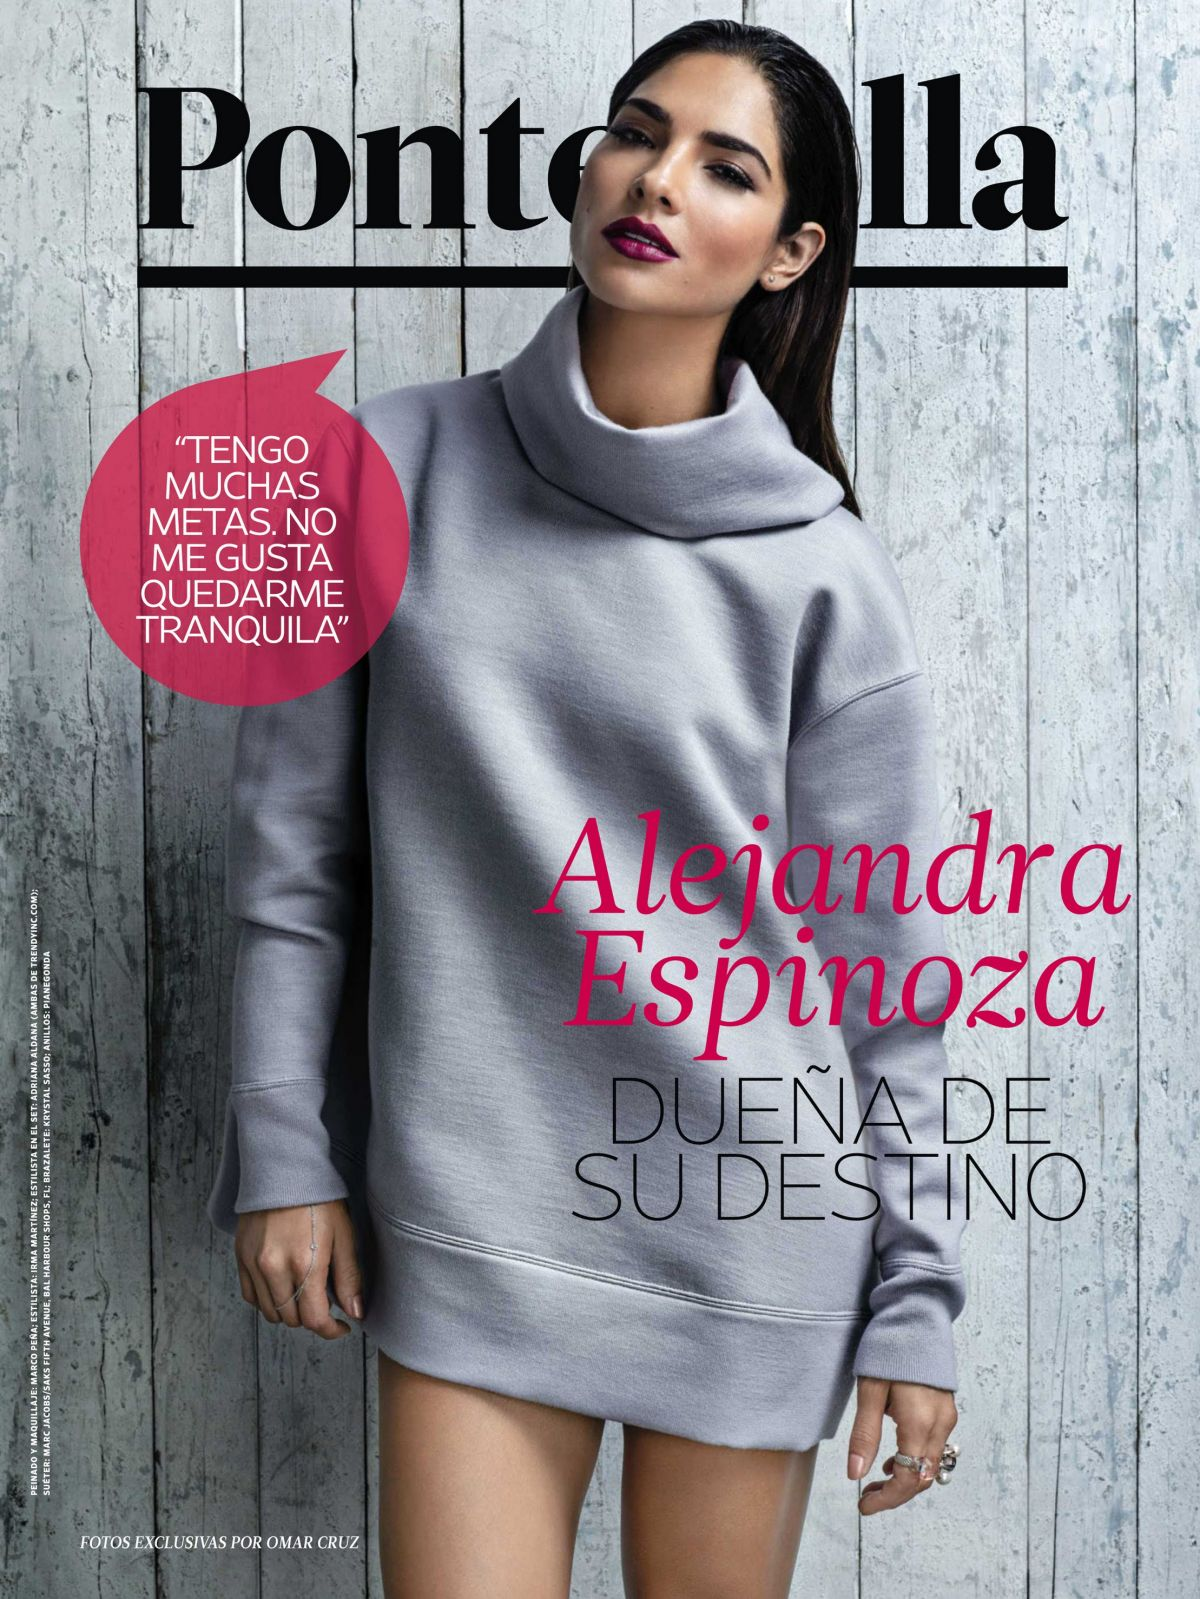 ALEJANDRA ESPINOZA in People En Espanol, September 2014 Issue